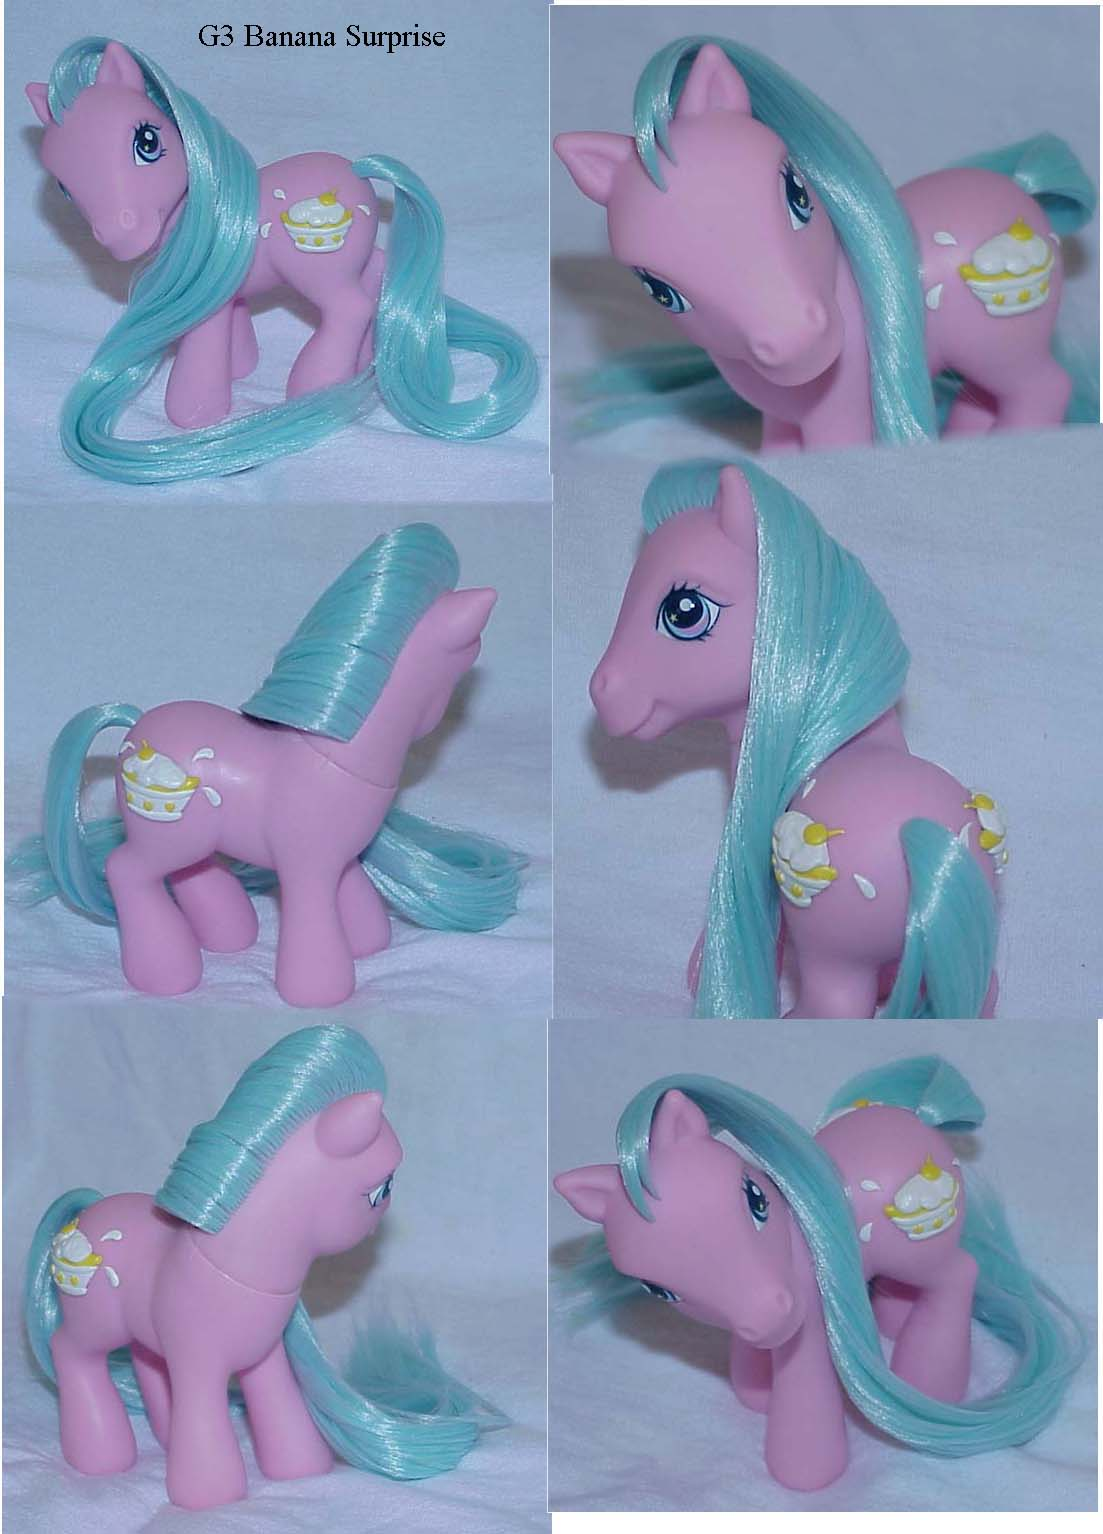 Banana Surprise custom pony by Woosie